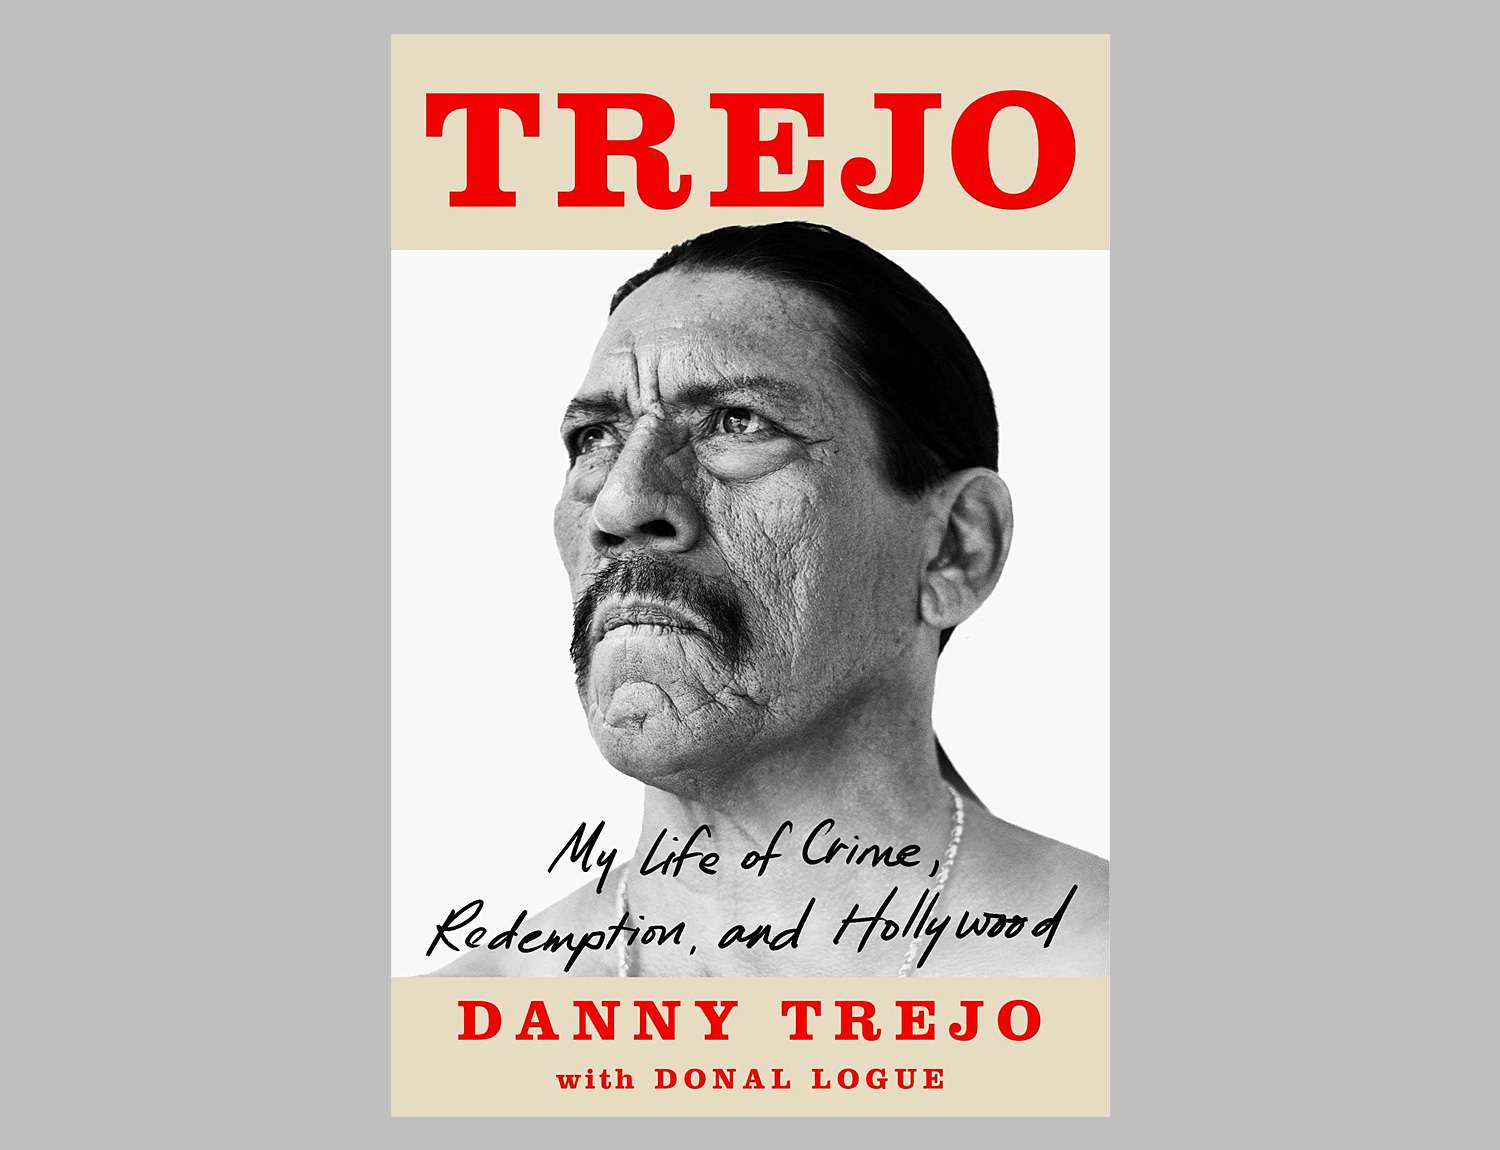 Trejo: My Life of Crime, Redemption, and Hollywood at werd.com